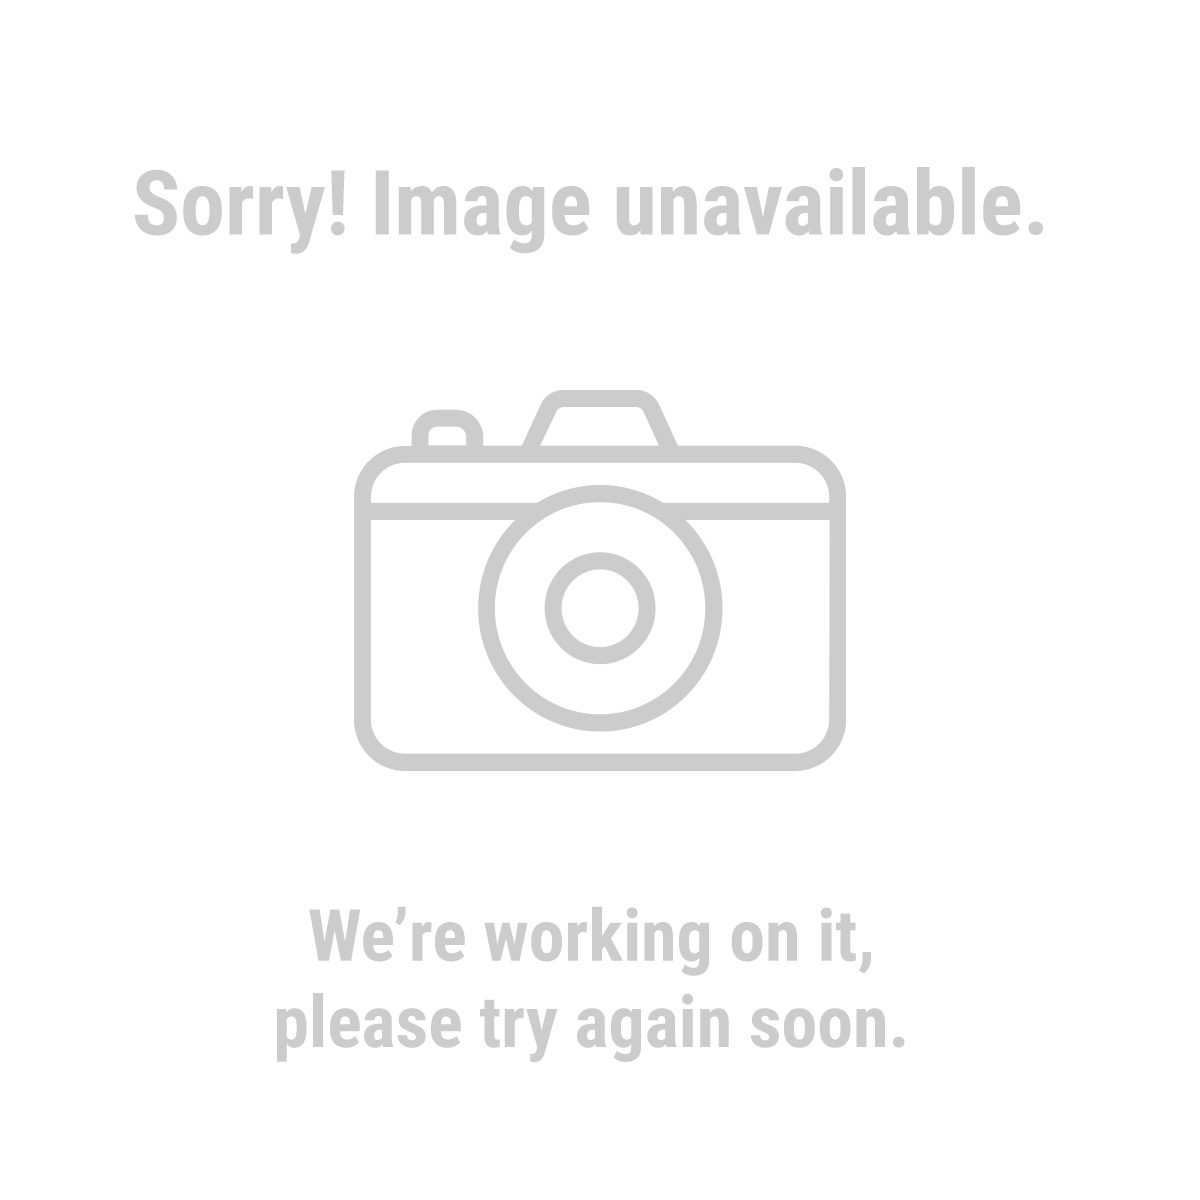 Pittsburgh® 63140 4-in-1 Aluminum Rafter Angle Square